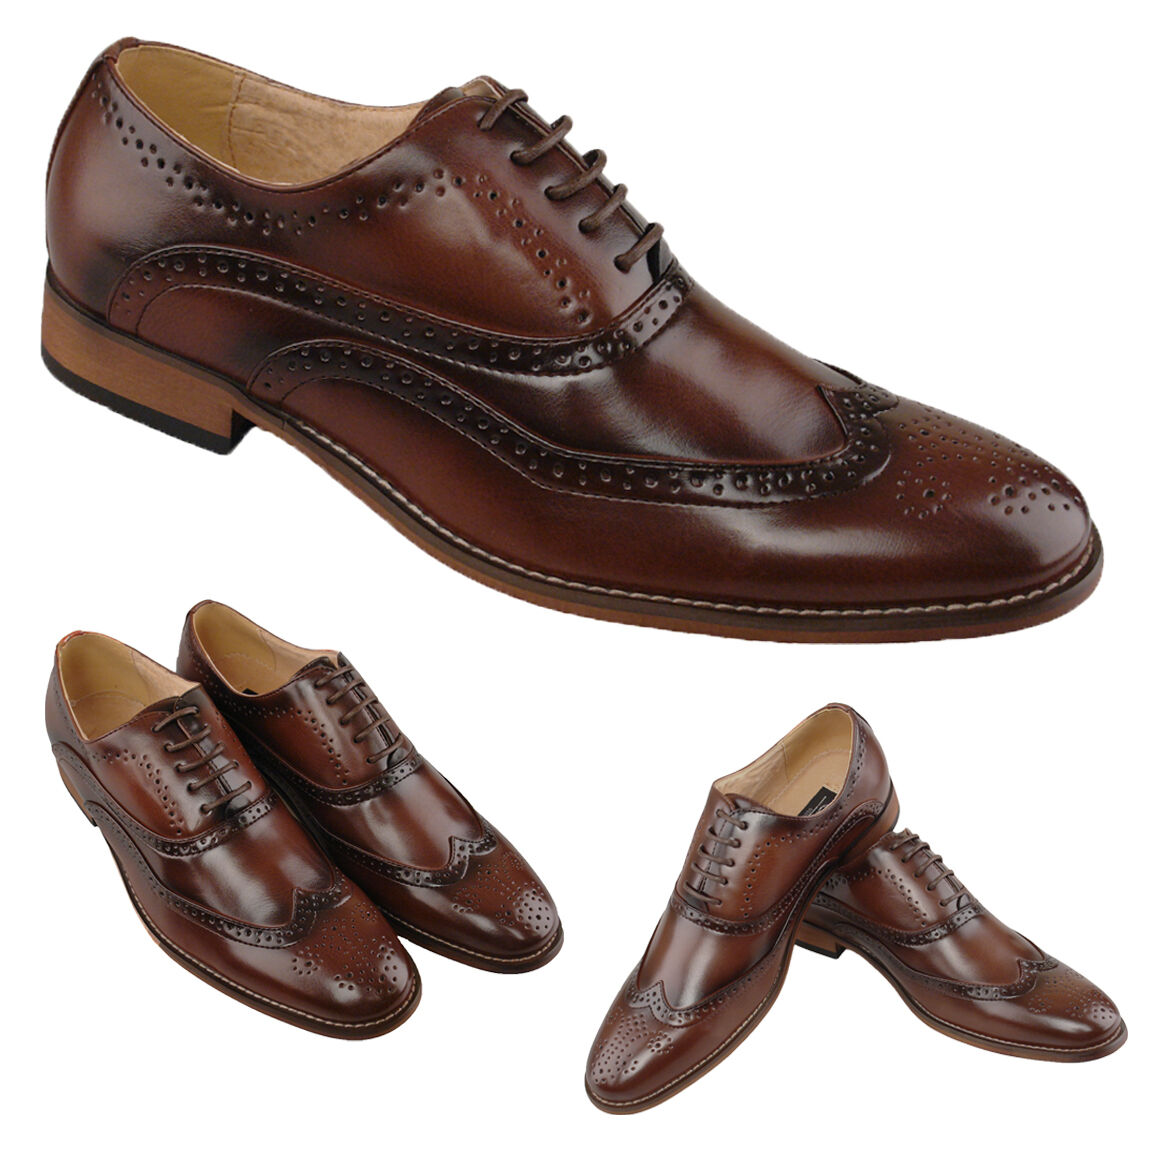 Mens Leather Lined shoes Lace Up Smart Suit Wedding Brogues 6 - 12